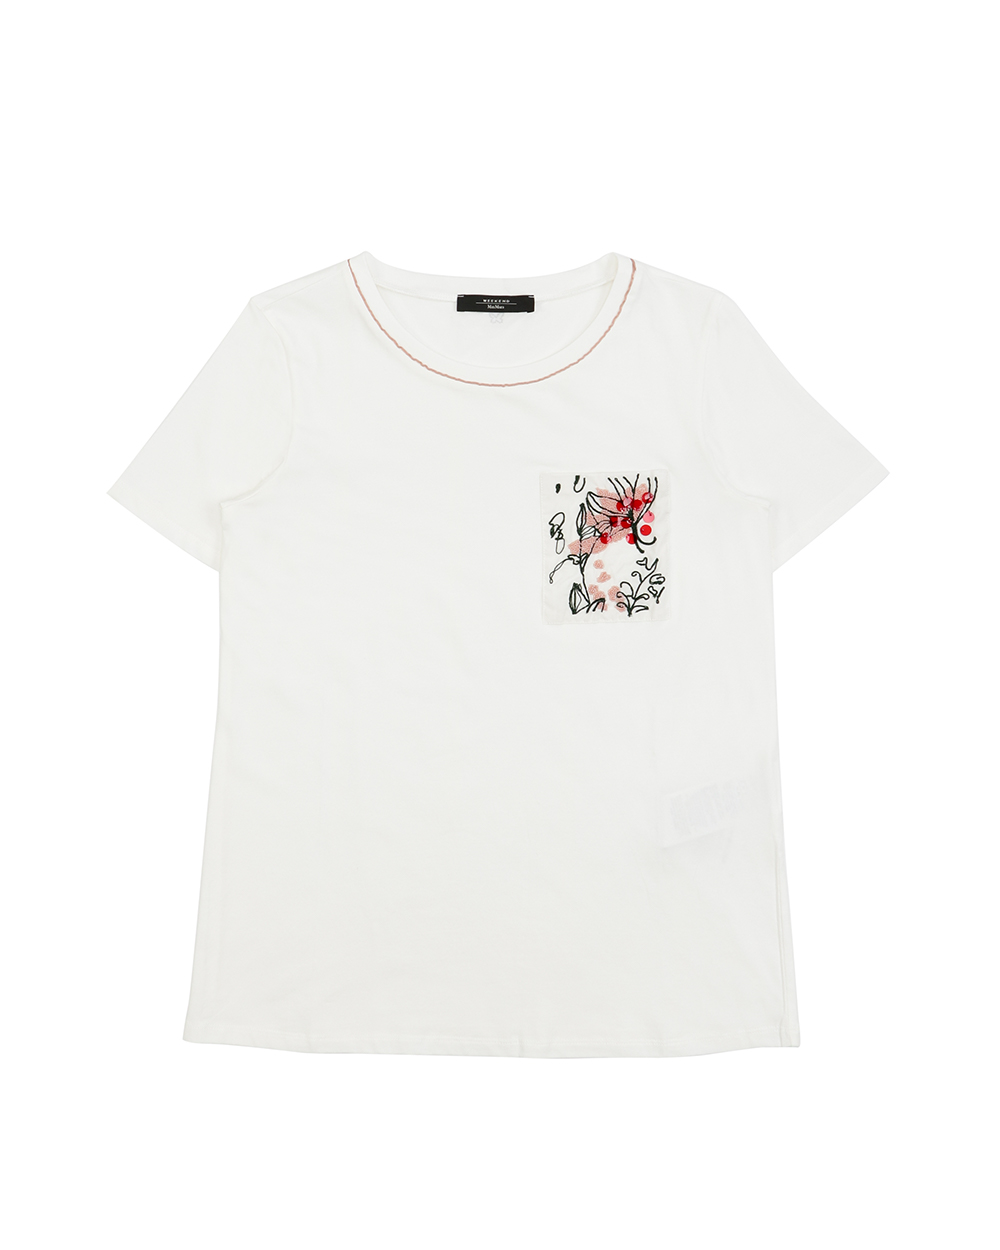 Embroidered Round Neck Short-Sleeves T-Shirt